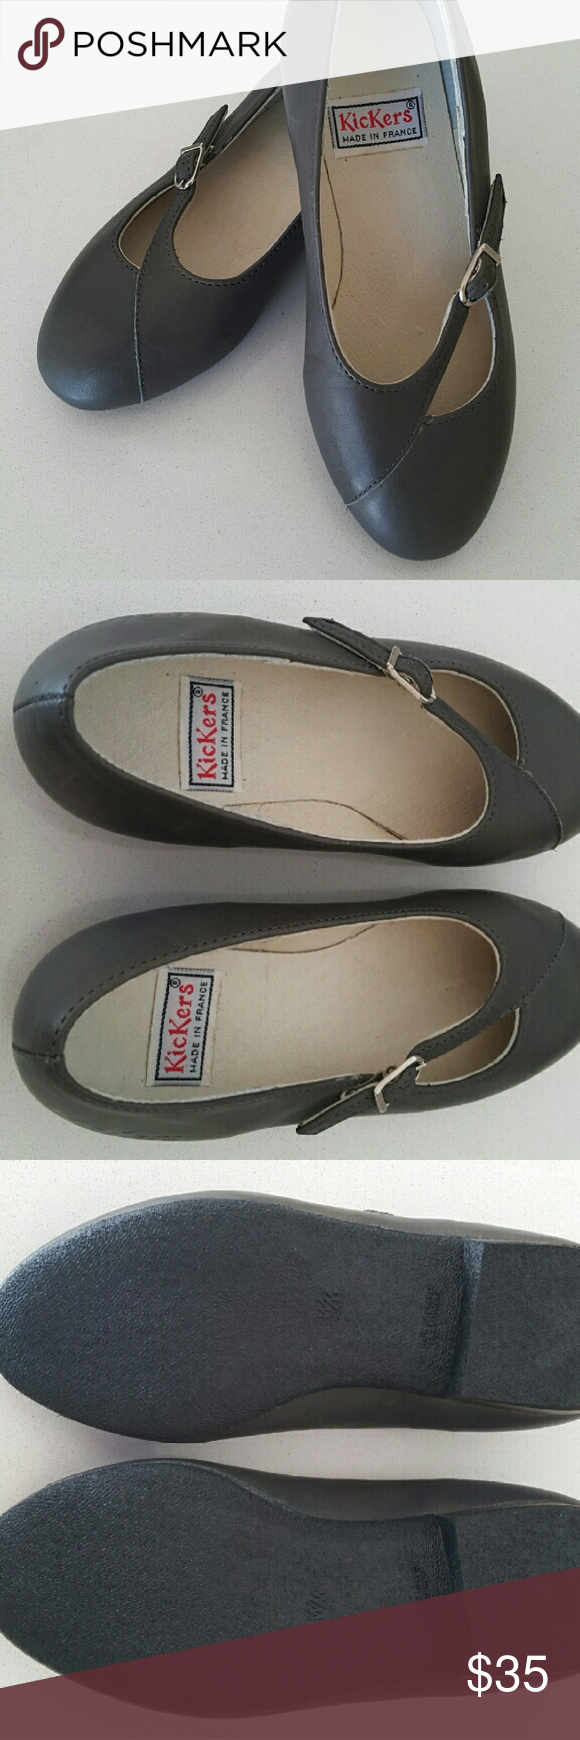 Vintage slip on Kickers These are a pair of 80's vintage